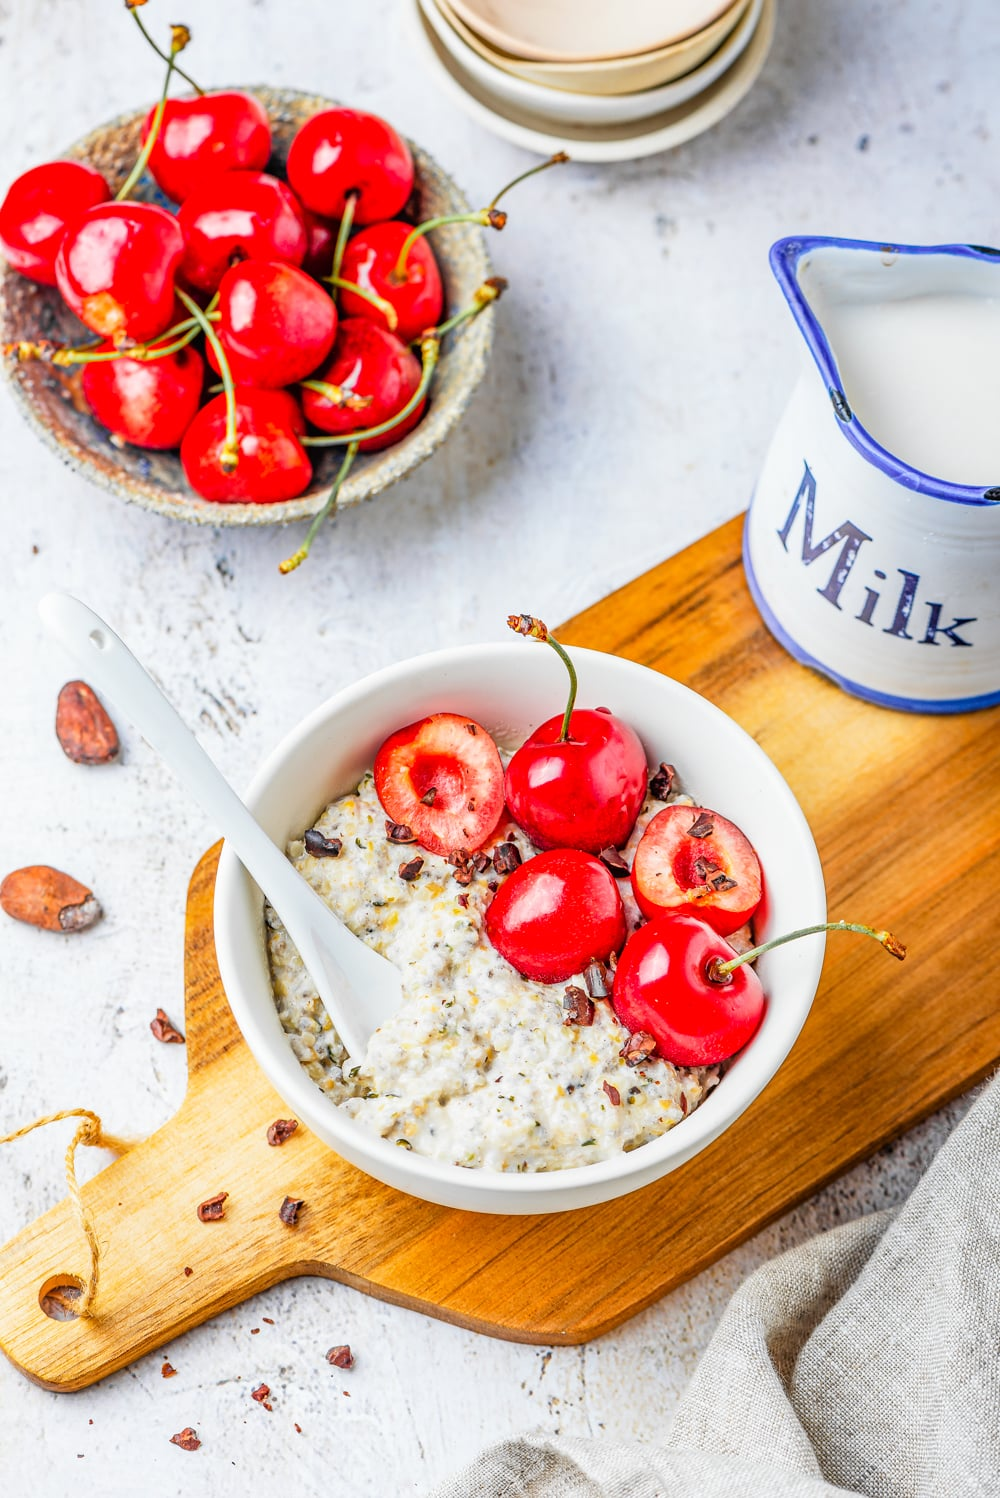 A bowl full of oatmeal, bits of dark chocolate, and cherries on a wooden cutting board.